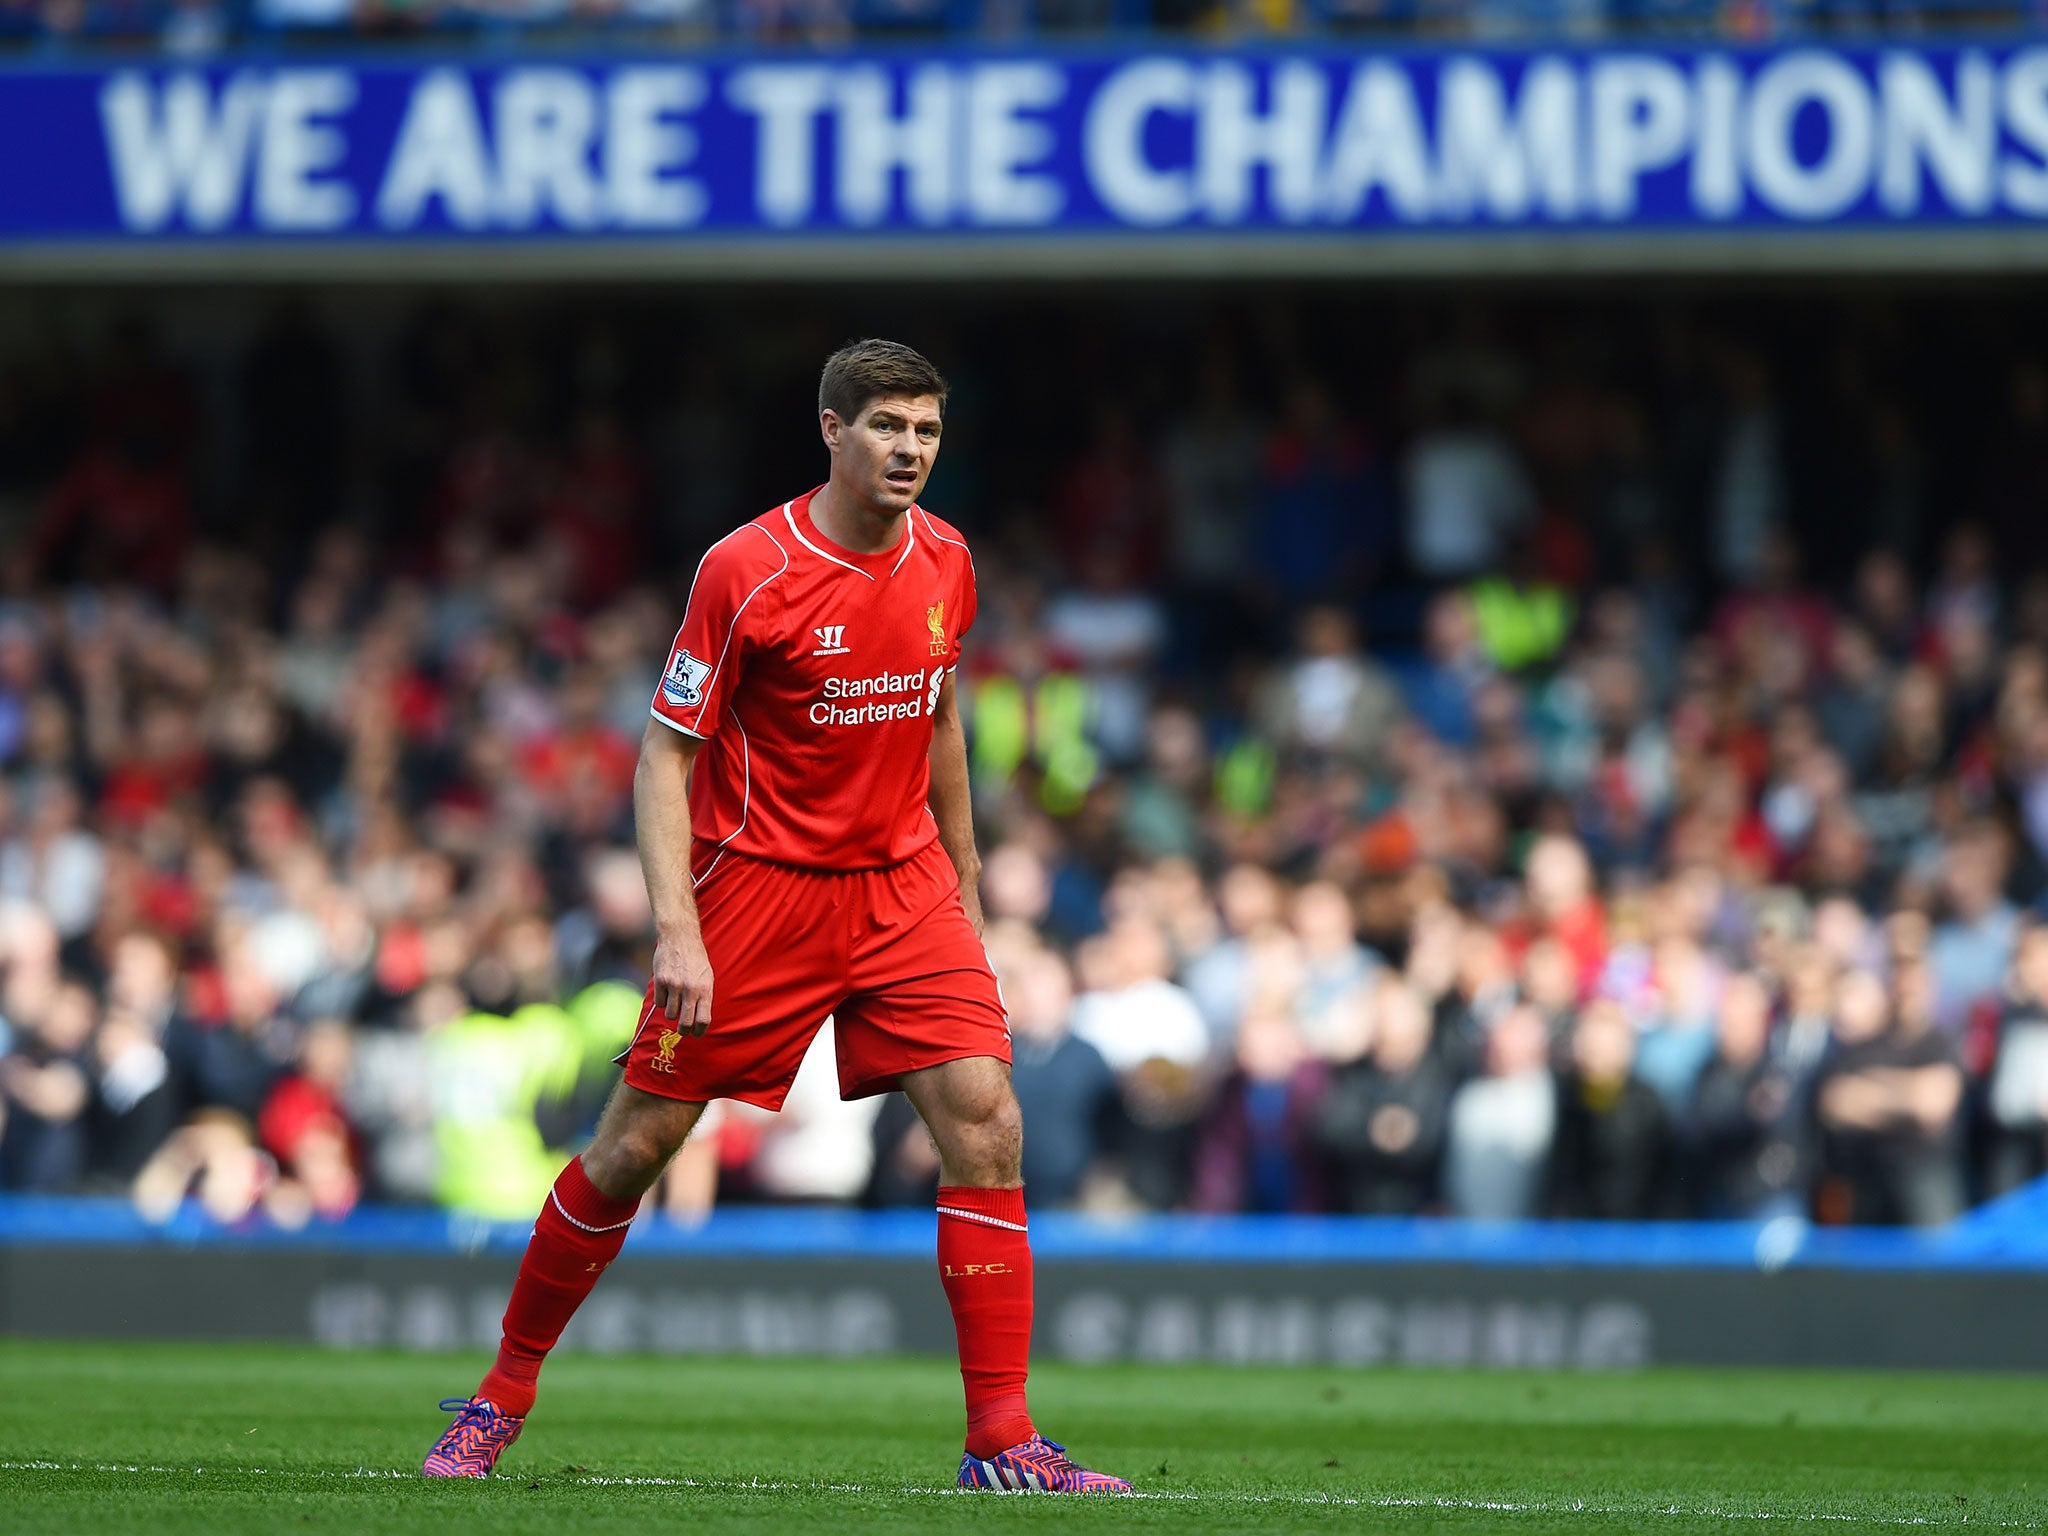 Steven Gerrard reveals Brendan Rodgers decision to use him as a